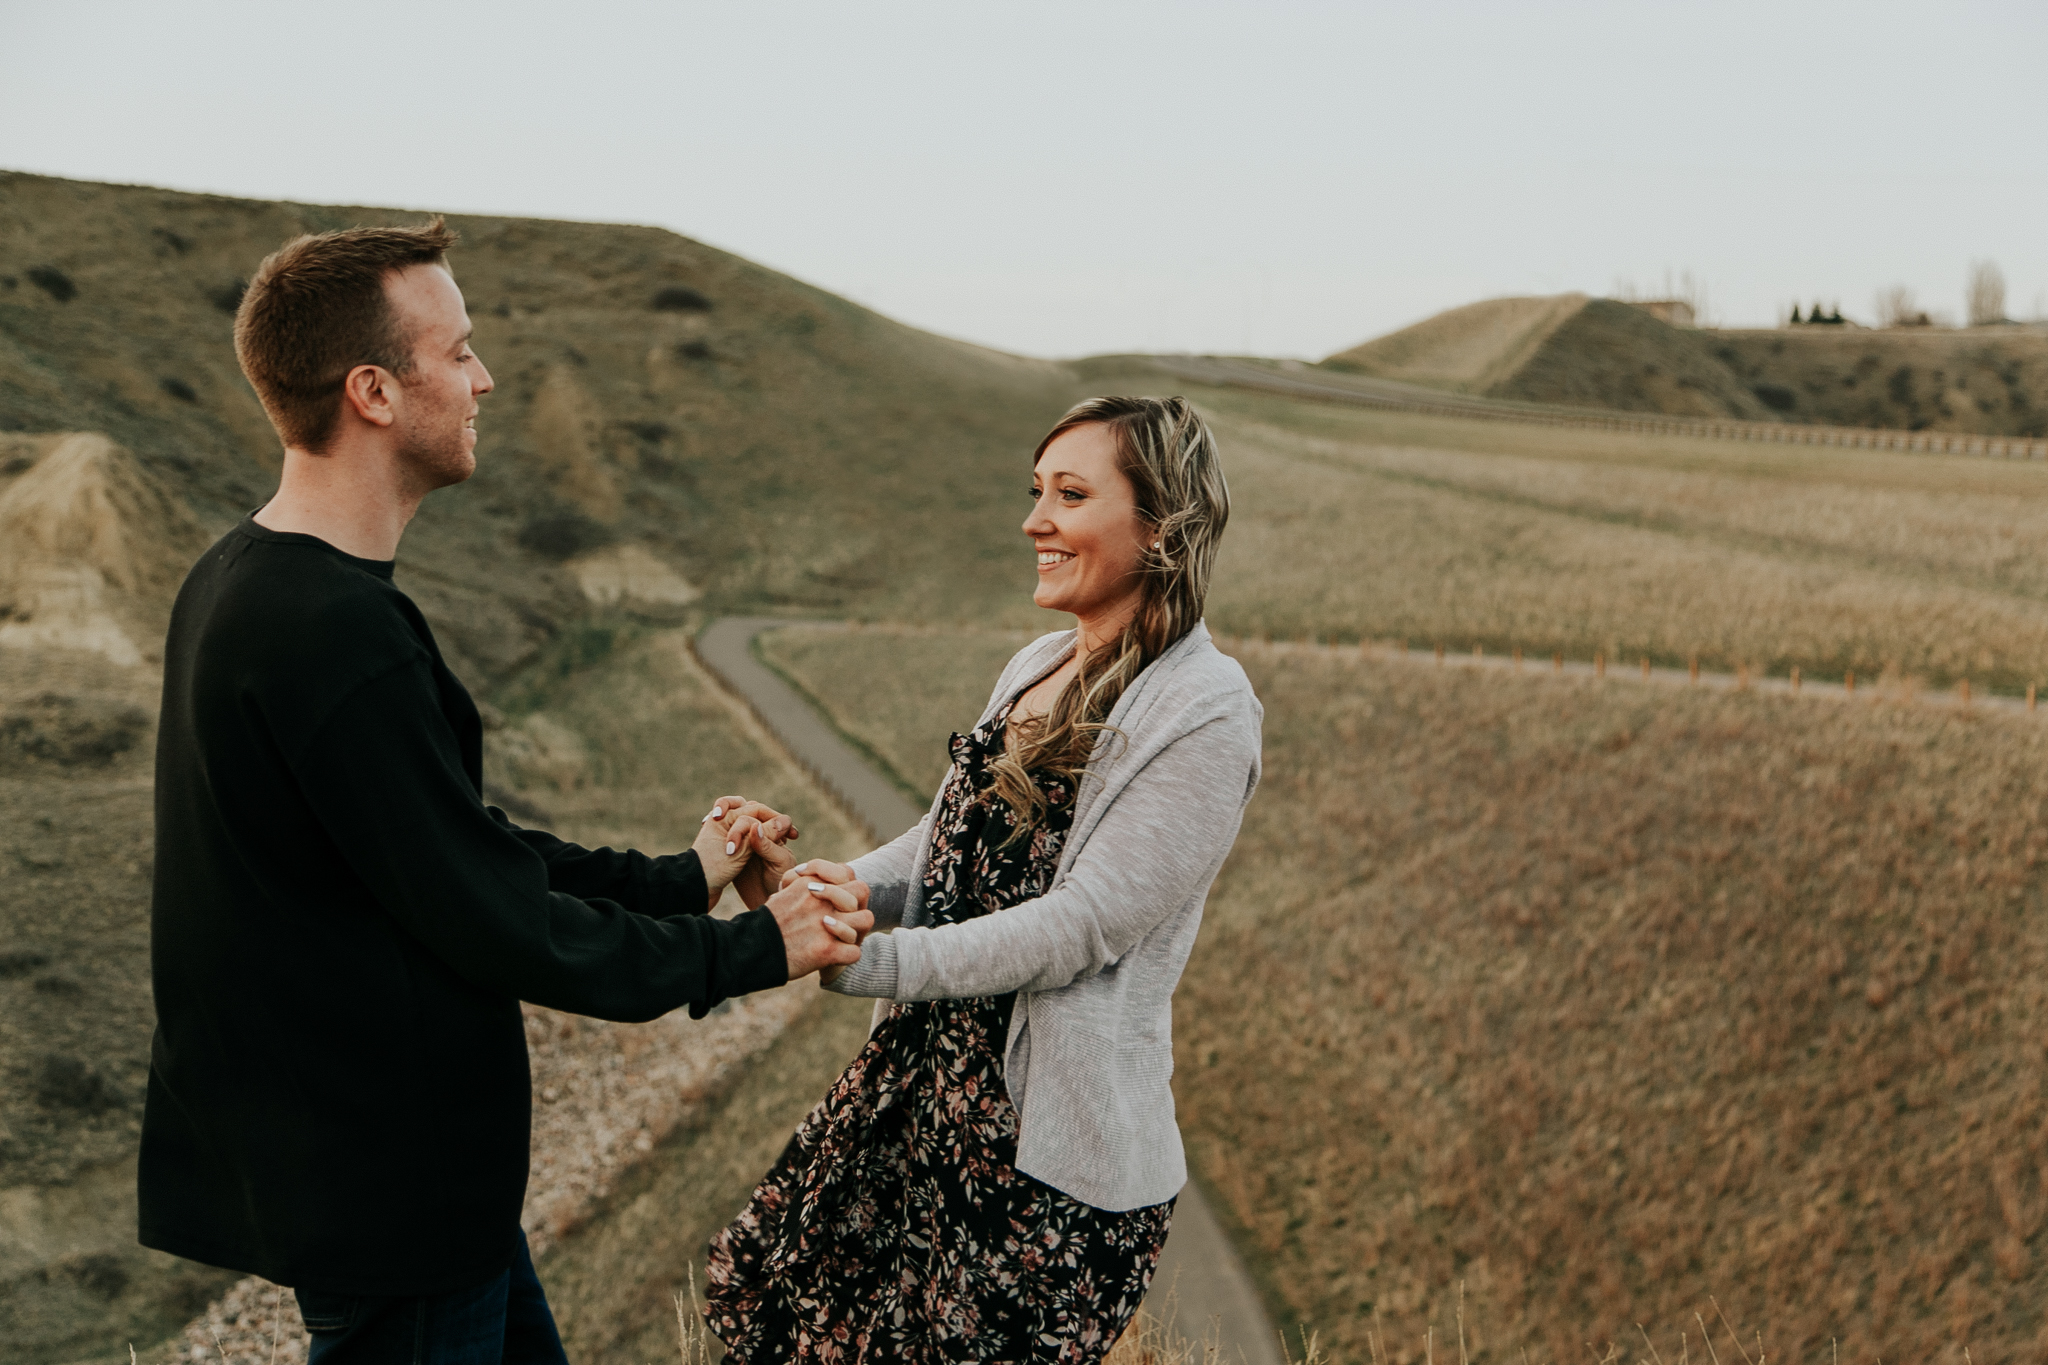 lethbridge-photographer-love-and-be-loved-photography-jessica-john-engagement-picture-image-photo-30.jpg